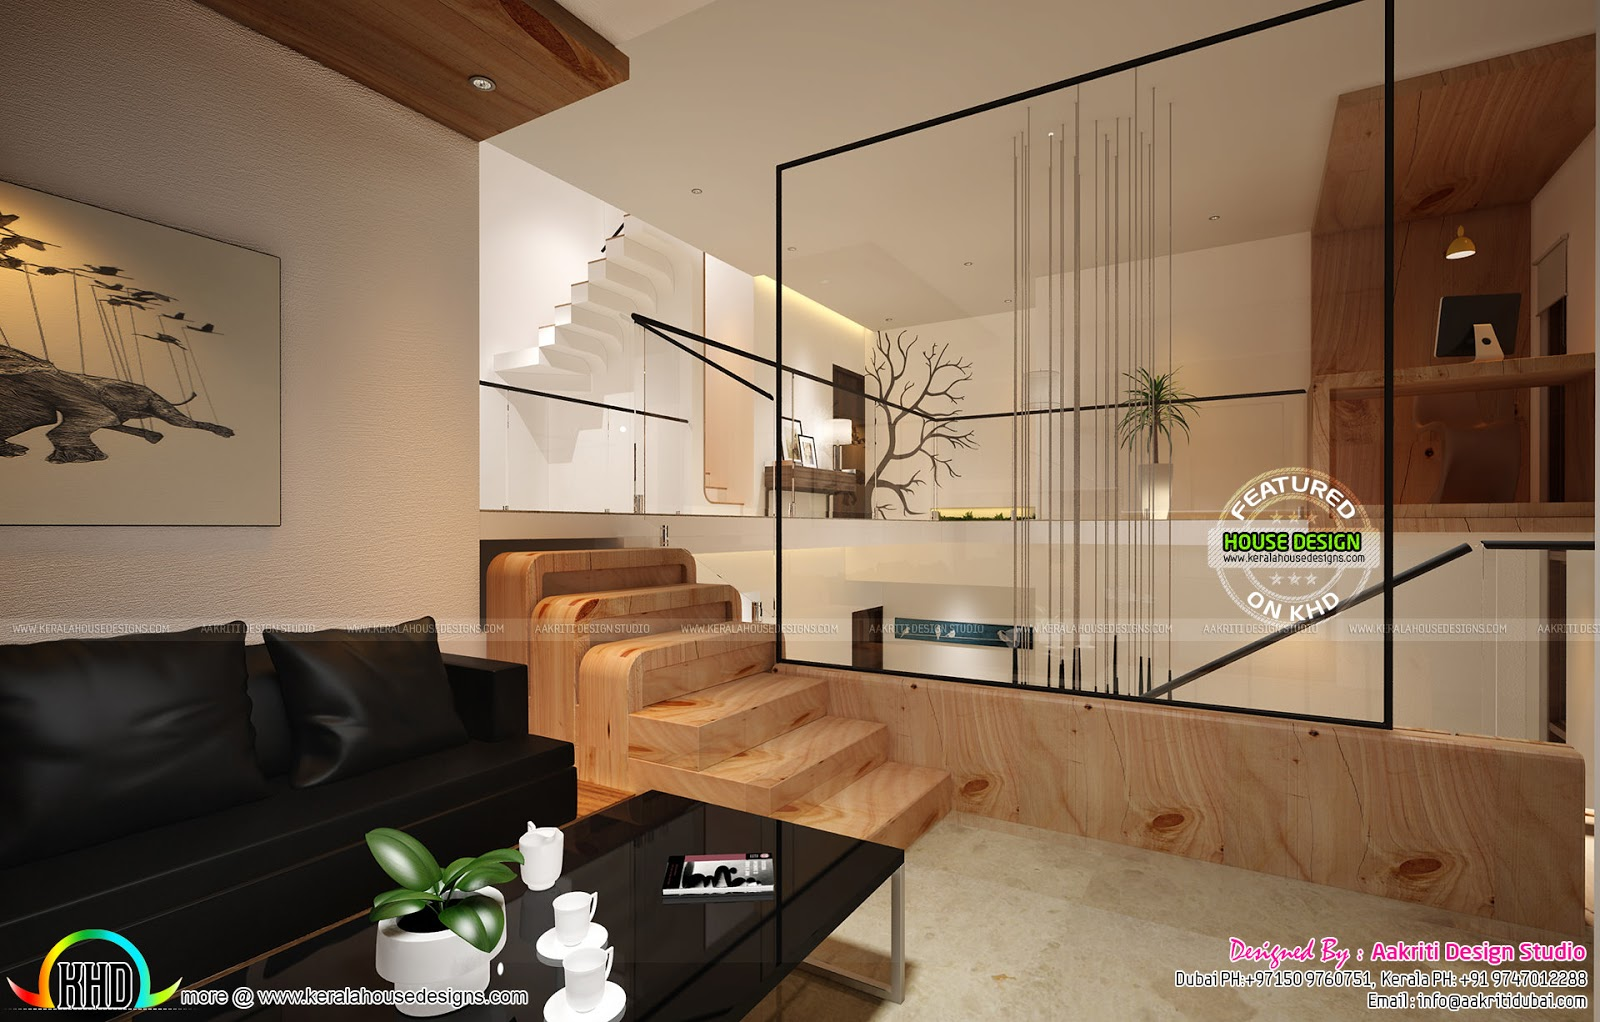 Sunken Seating Bedroom And Other Home Interios Kerala